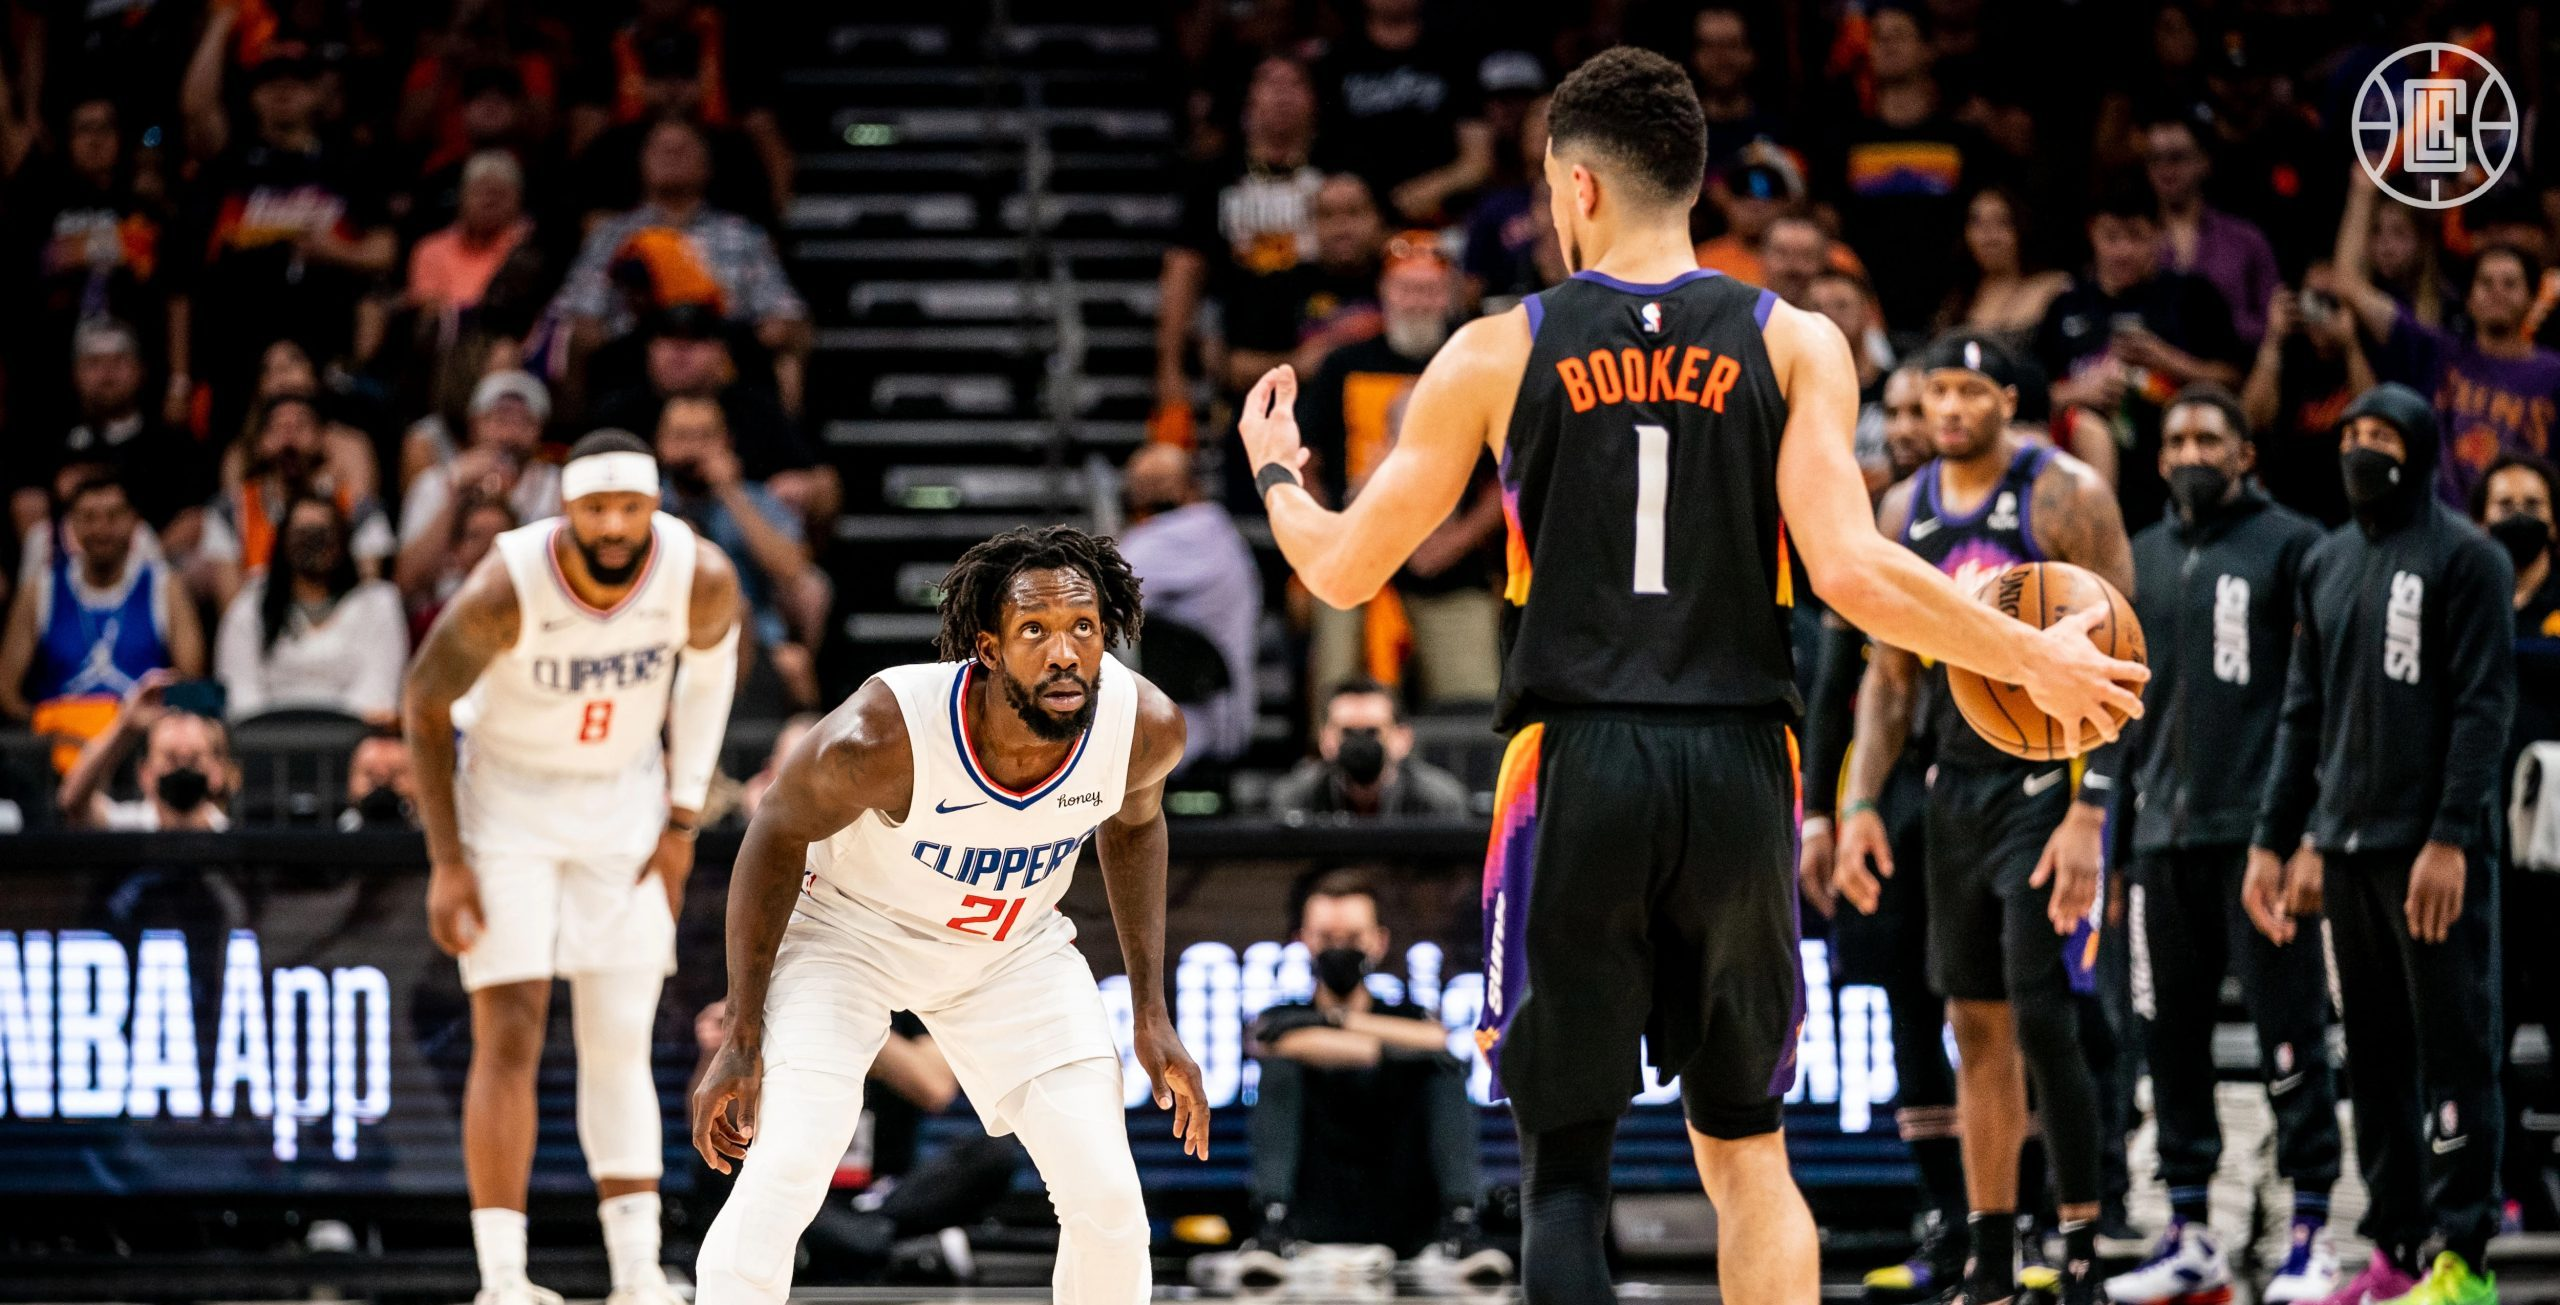 Clippers vs. Suns Western Conference Finals Game 6 Preview: Now or Never